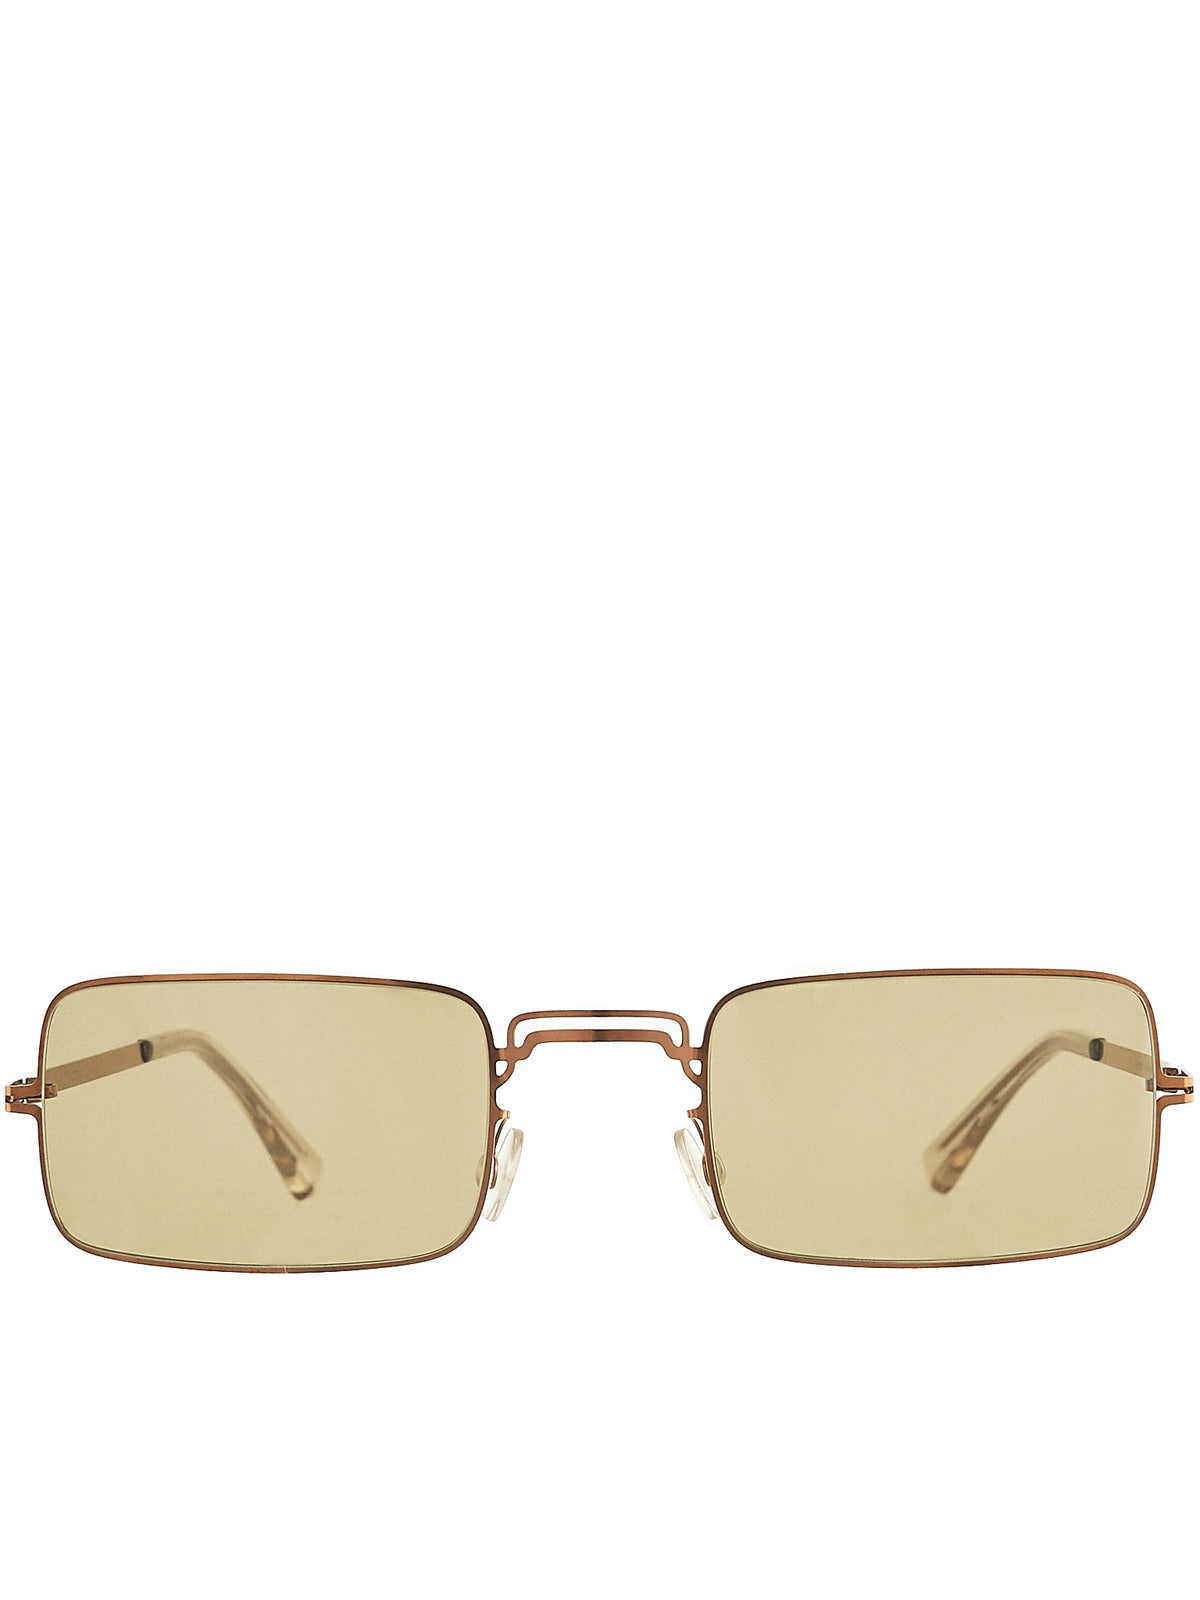 'MMCRAFT003' Square Frame Sunglasses (MMCRAFT003-COPPER-LIGHTBROWN)